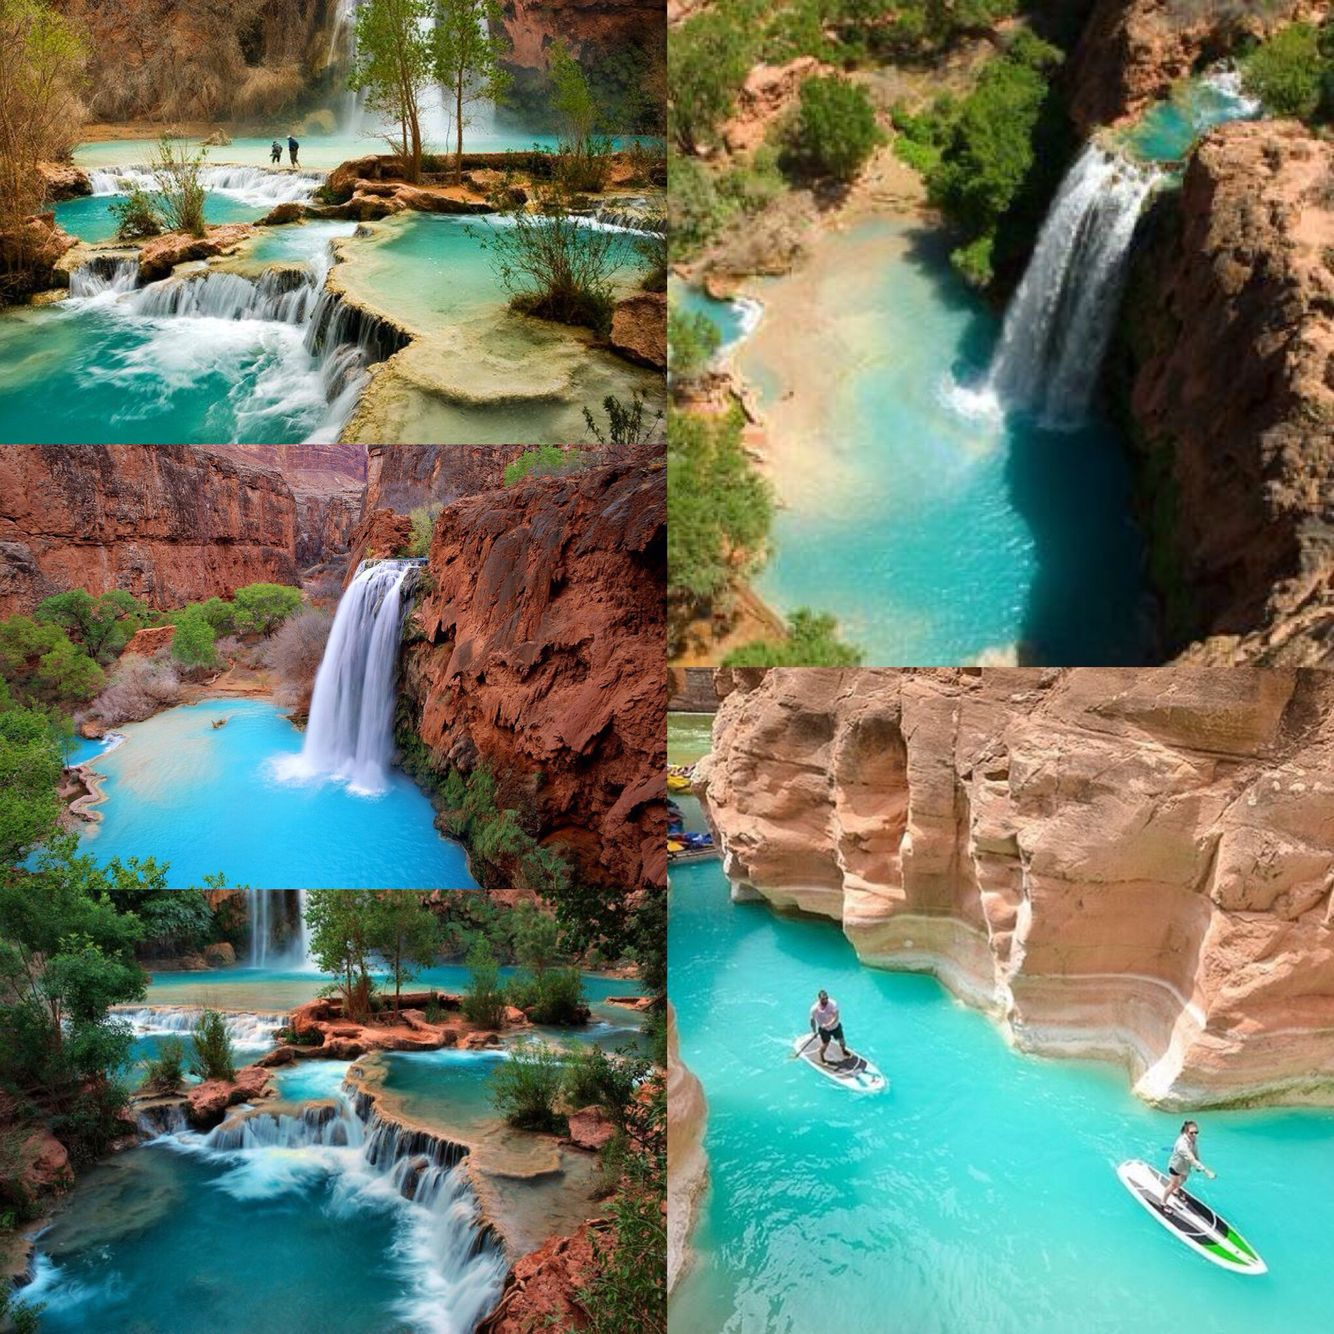 Best Places Take Pictures Arizona: Lake Havasu Falls, Arizona. Neeeeeed To Go Here!